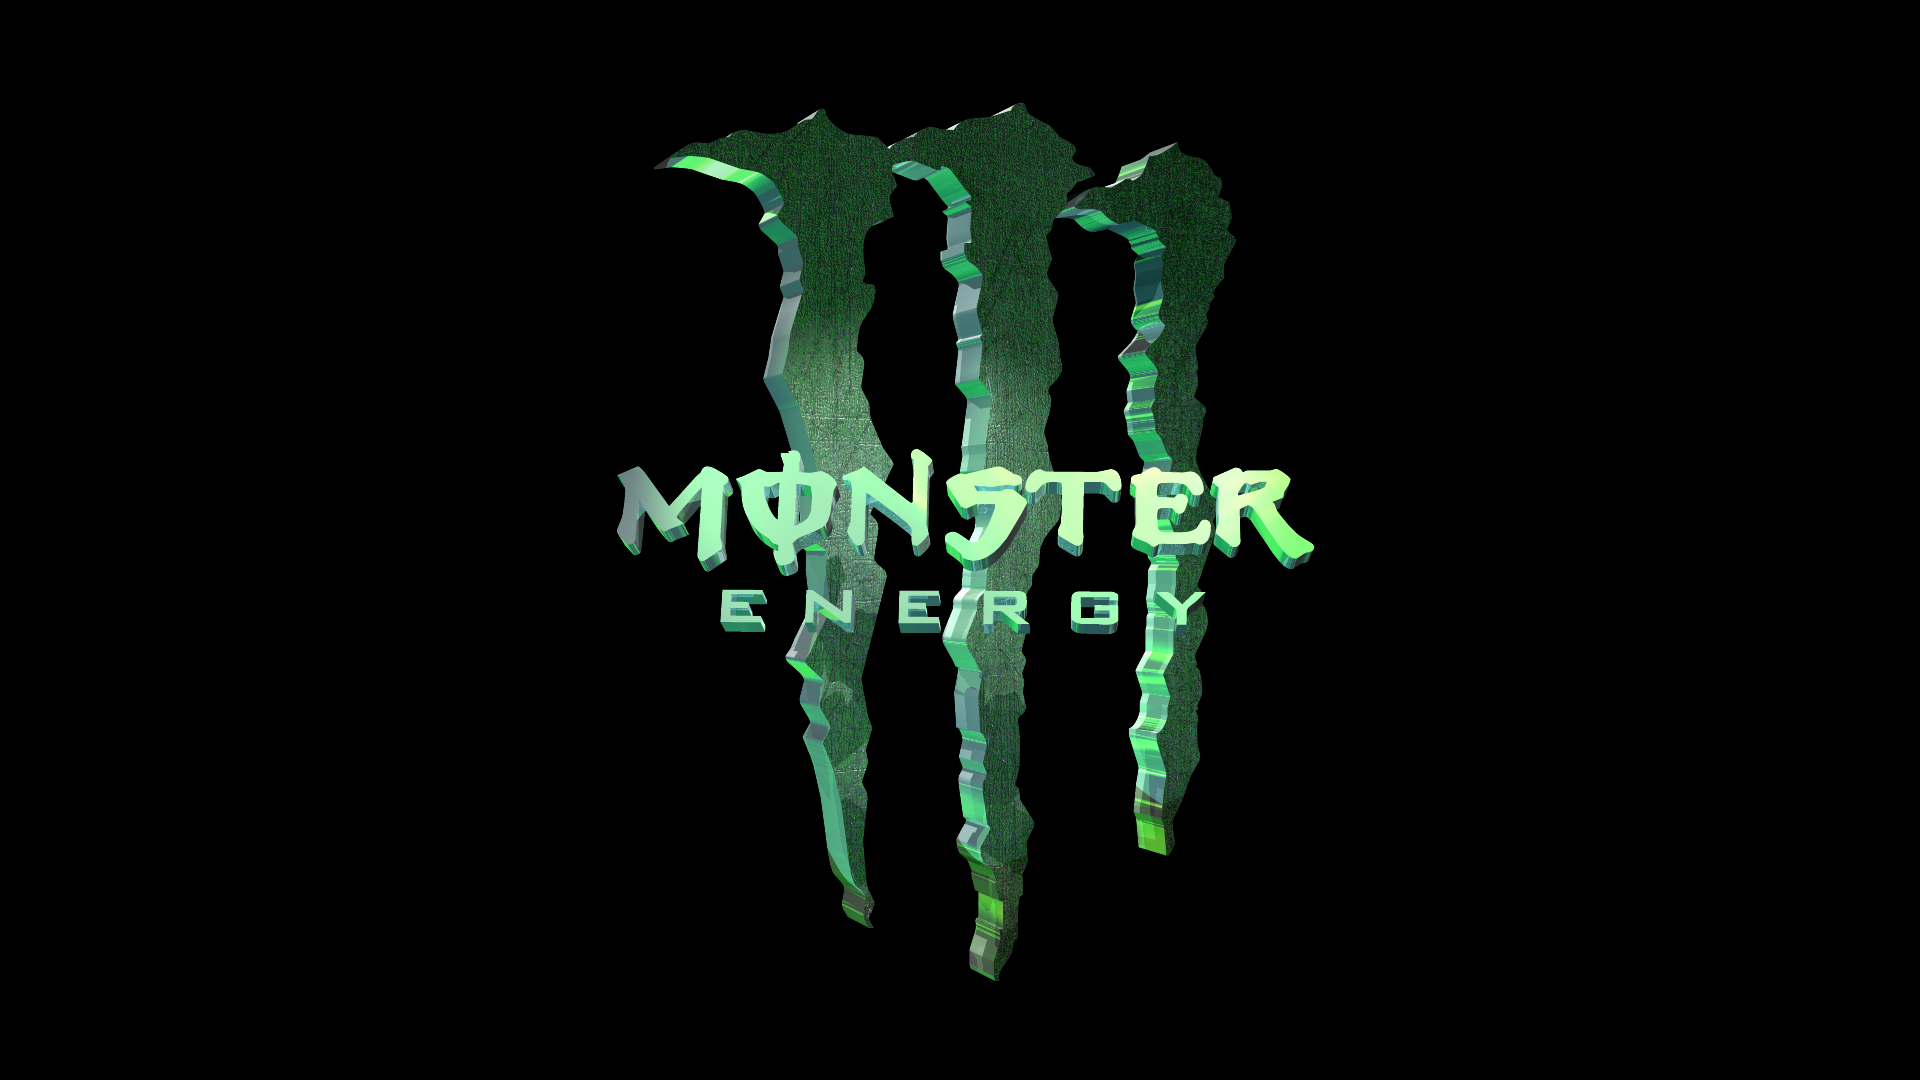 Monster Energy Wallpapers [HD]   Taringa 1920x1080